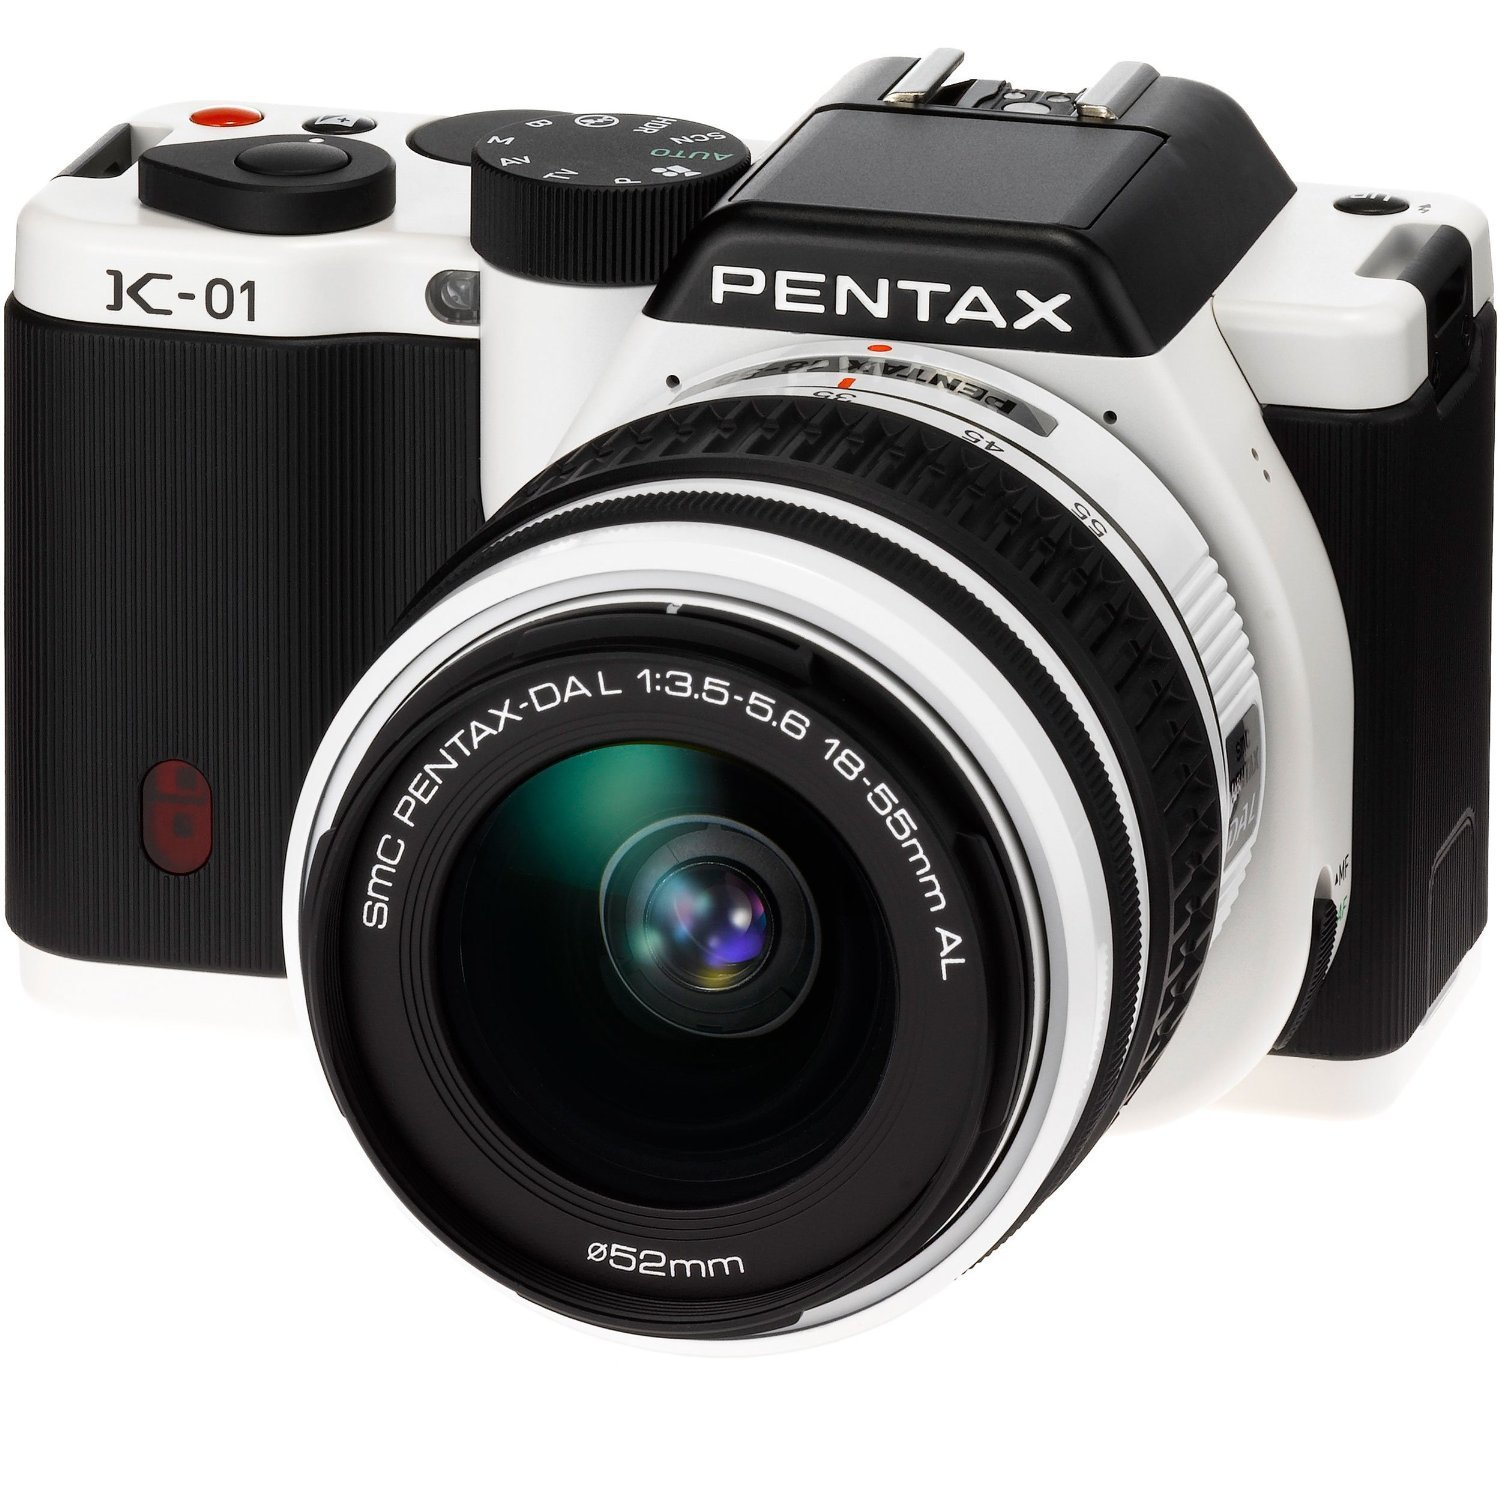 PENTAX digital SLR camera K-01 body white / black K-01BODY WH / BK